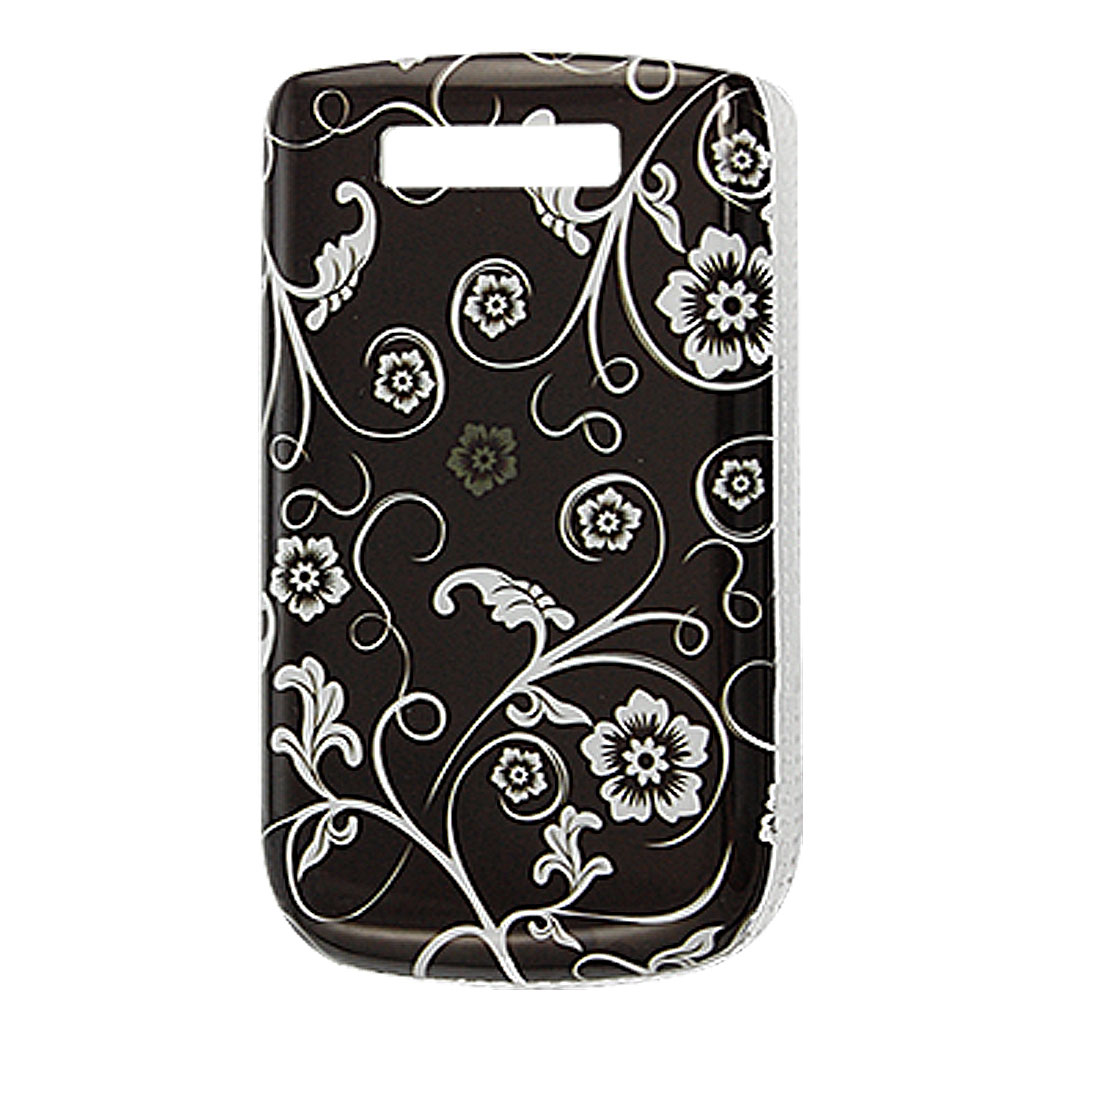 Black White Floral Print IMD Back Case Shell for Blackberry 9800